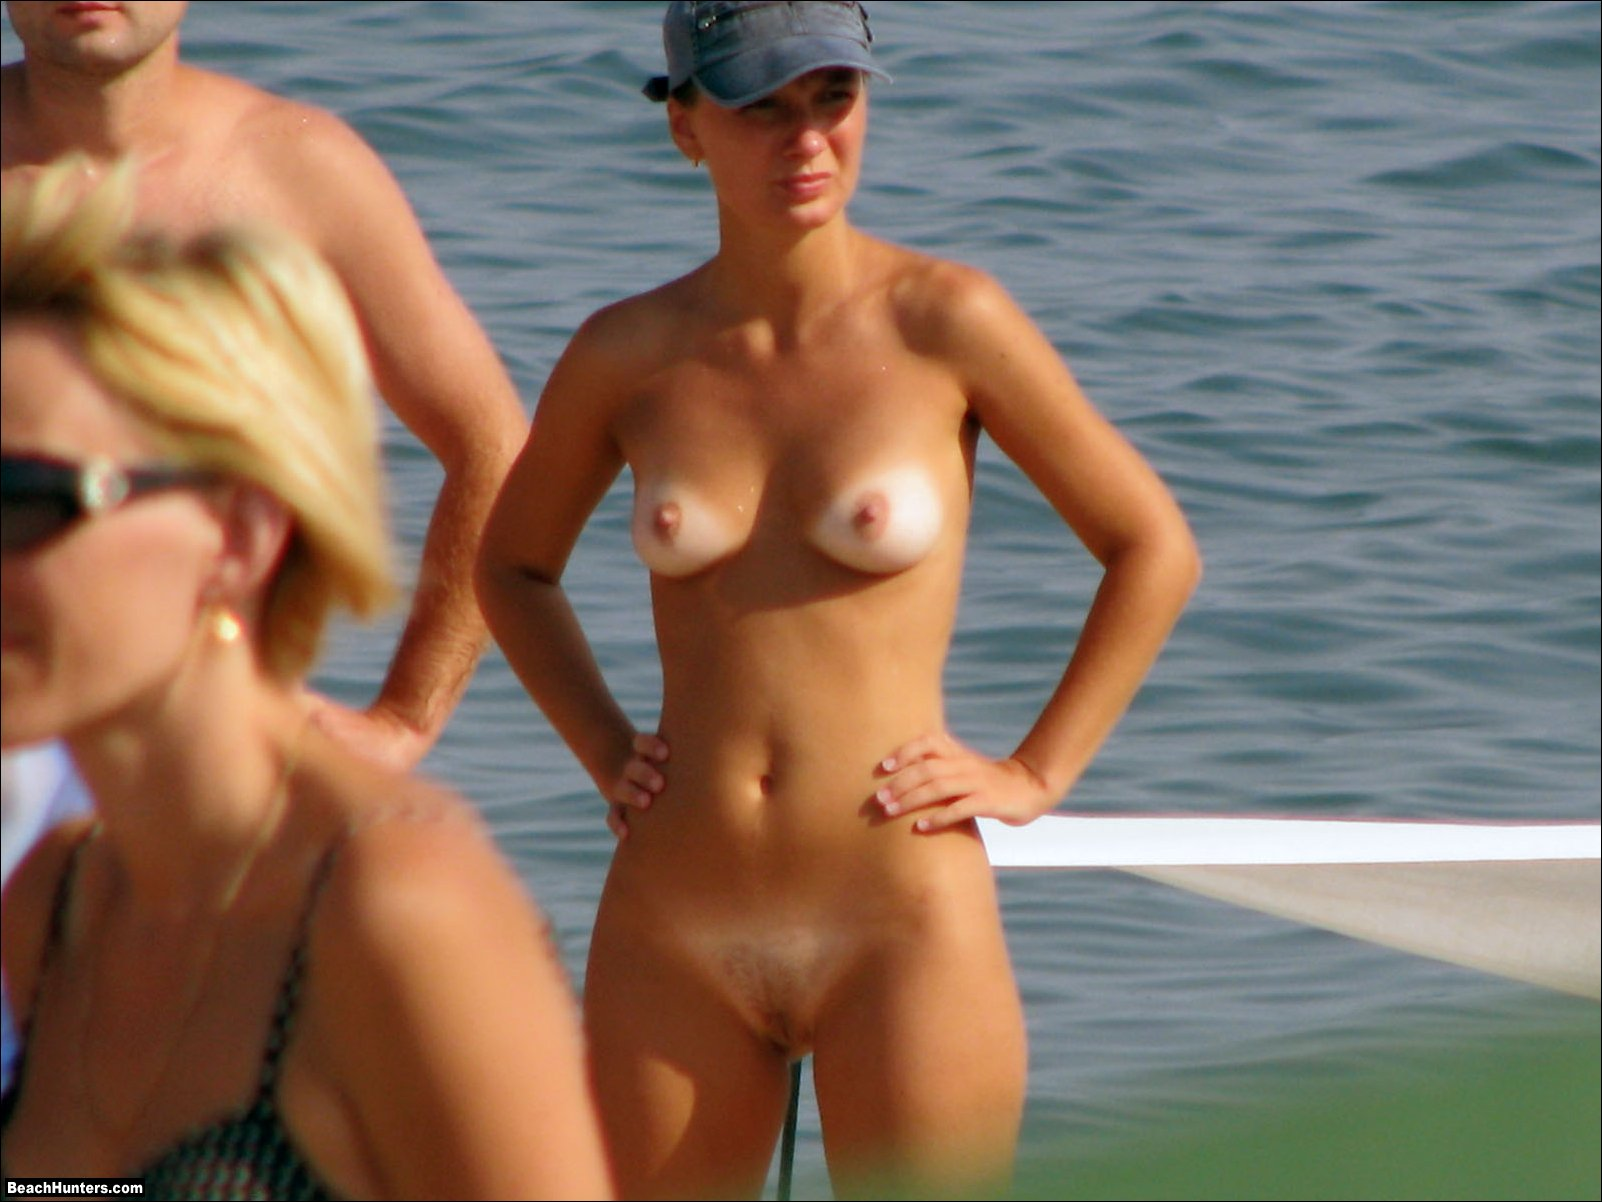 Nude Vollyball Players 93